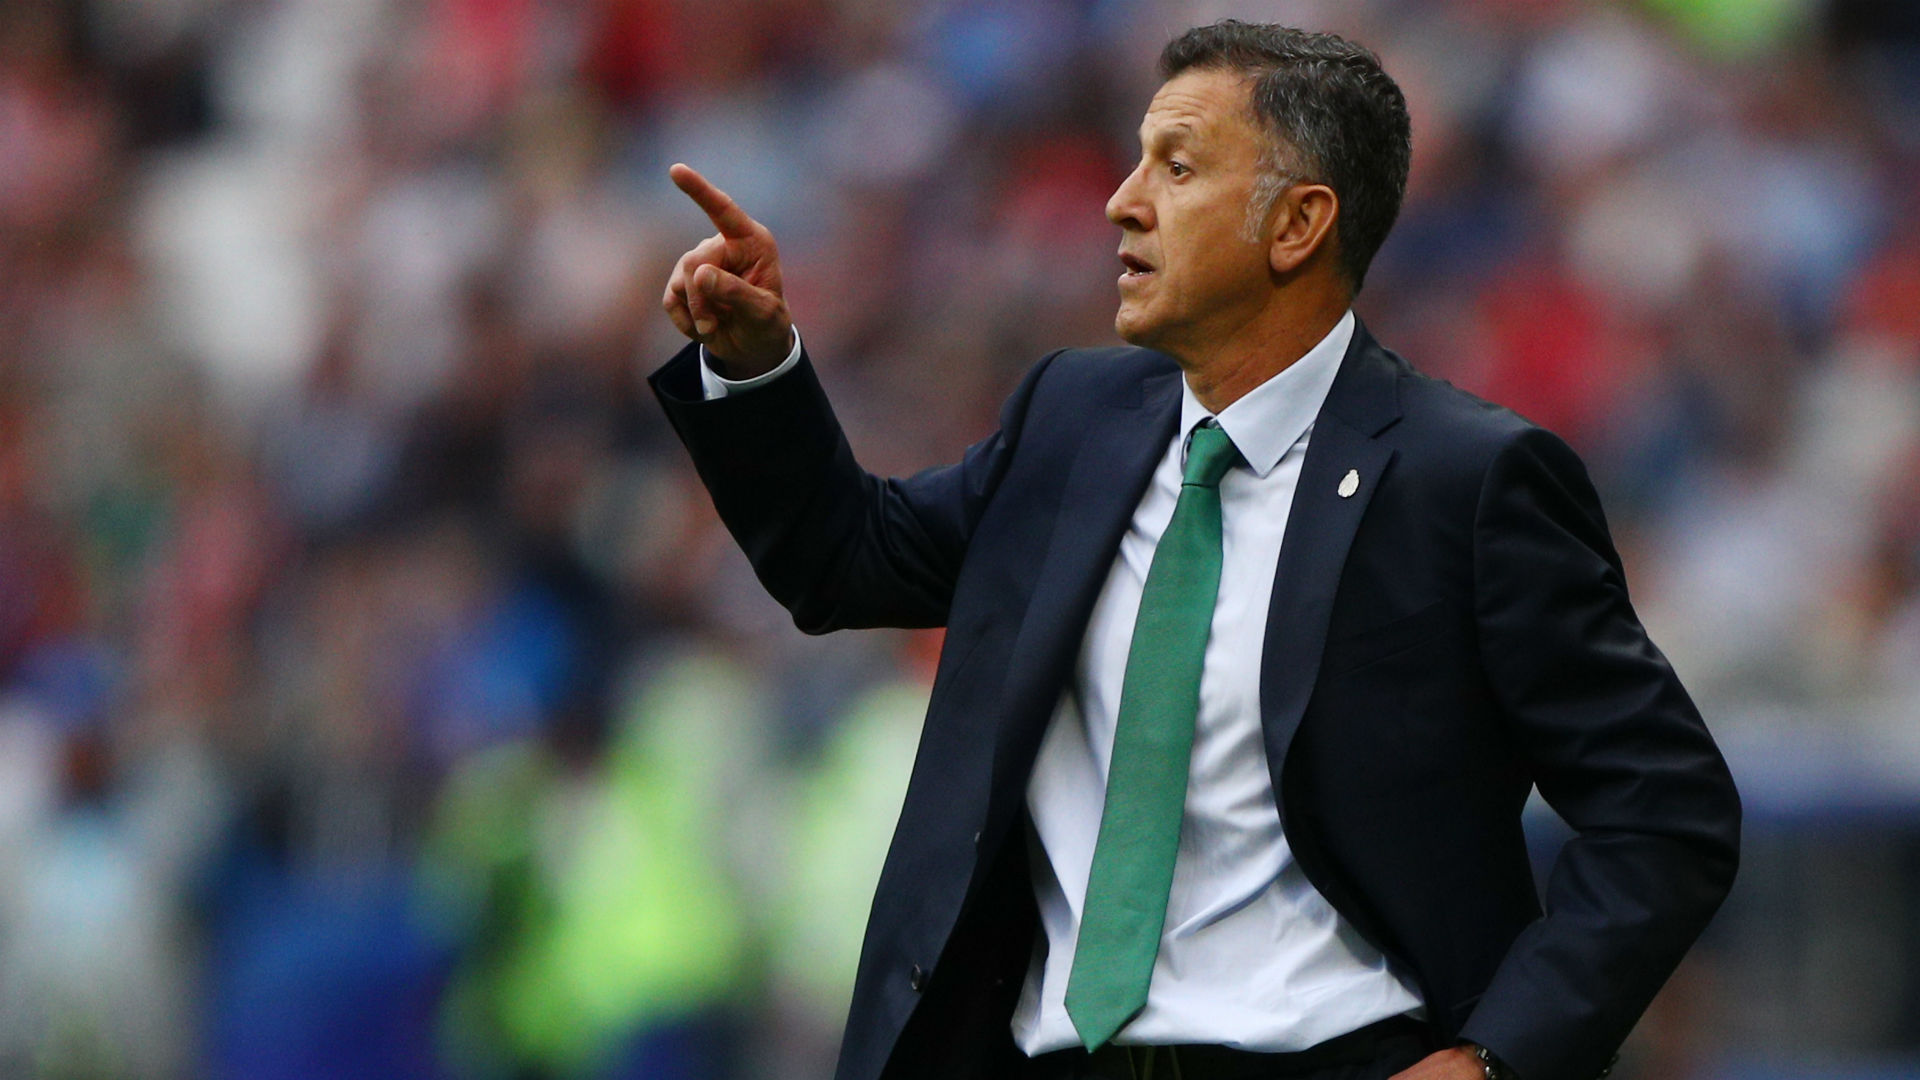 http://images.performgroup.com/di/library/GOAL/66/46/juan-carlos-osorio-mexico-confederations-cup_wcp7w3ja1gyy1q7pol8zuzxsl.jpg?t=-623036972